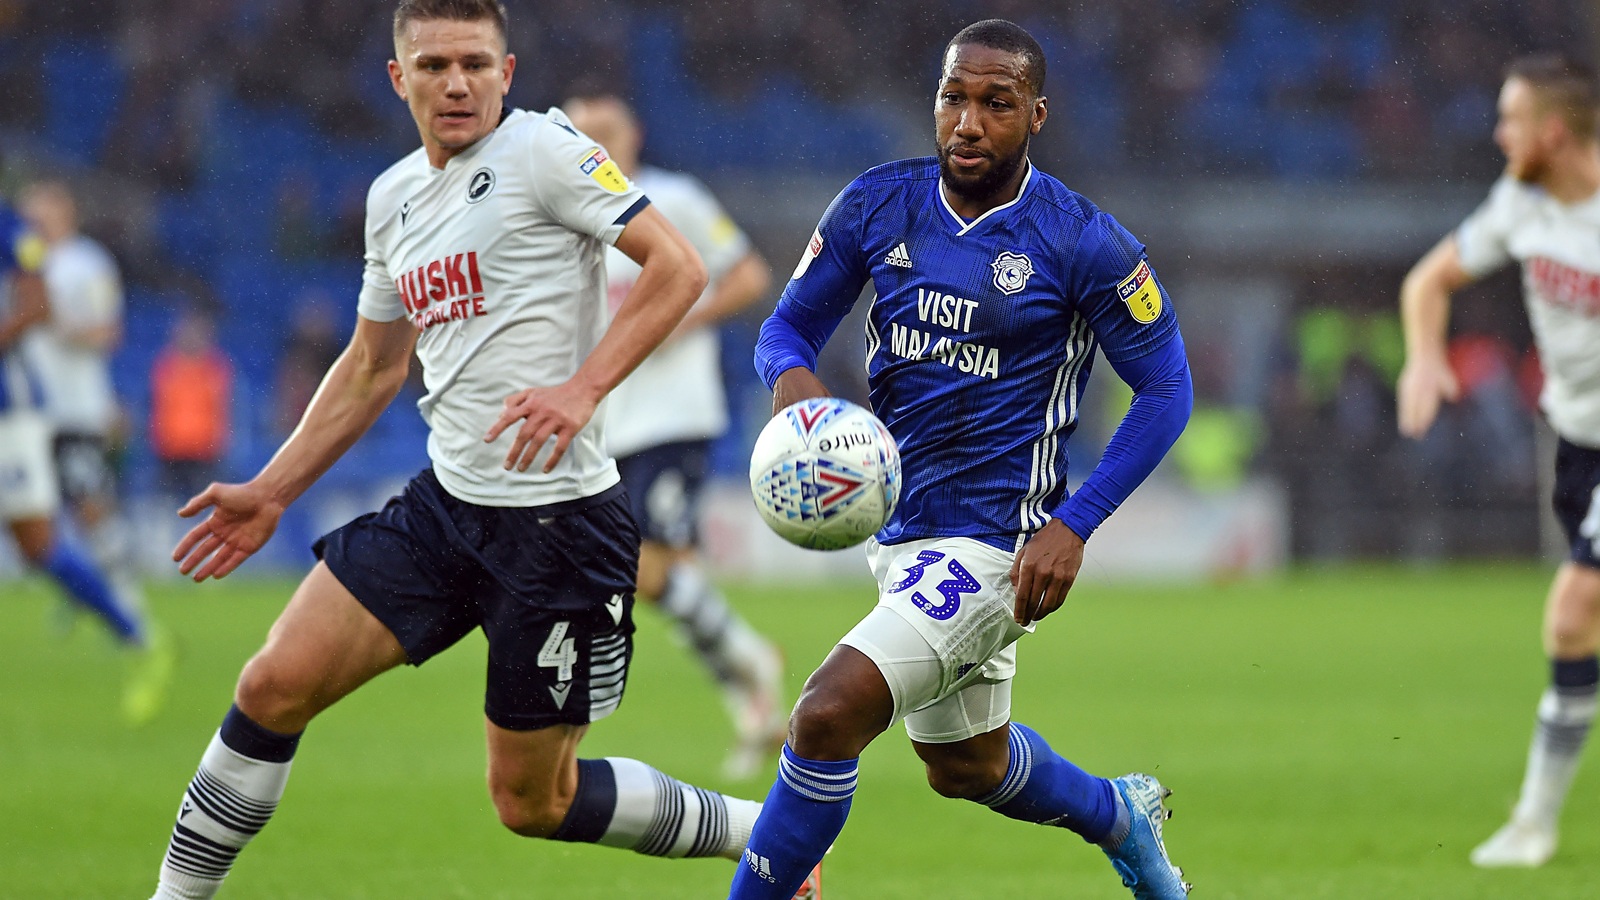 Video Highlight: Cardiff City vs West Brom – LEAGUE CHAMPIONSHIP – 29/01/2020